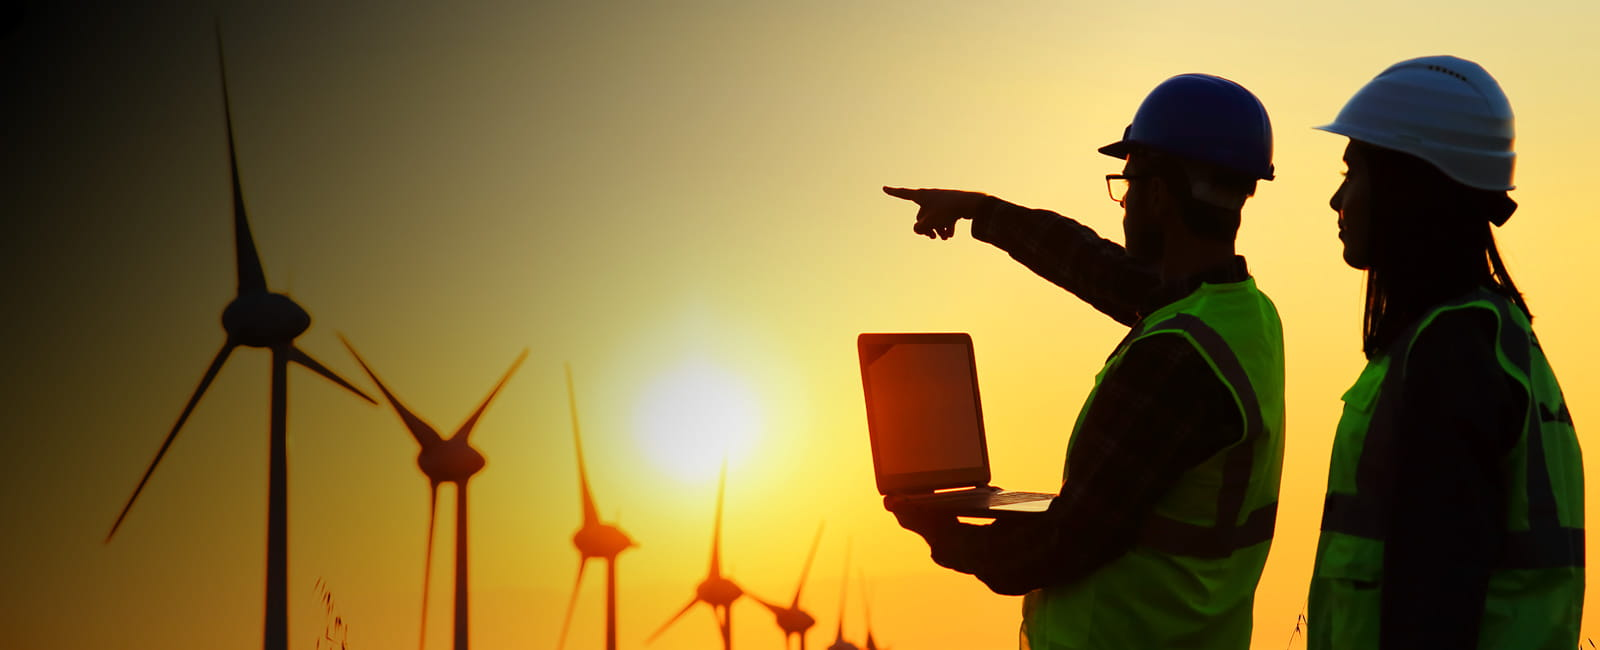 Two workers at a wind energy farm in image used on page about SAP Ariba procure to pay software solution